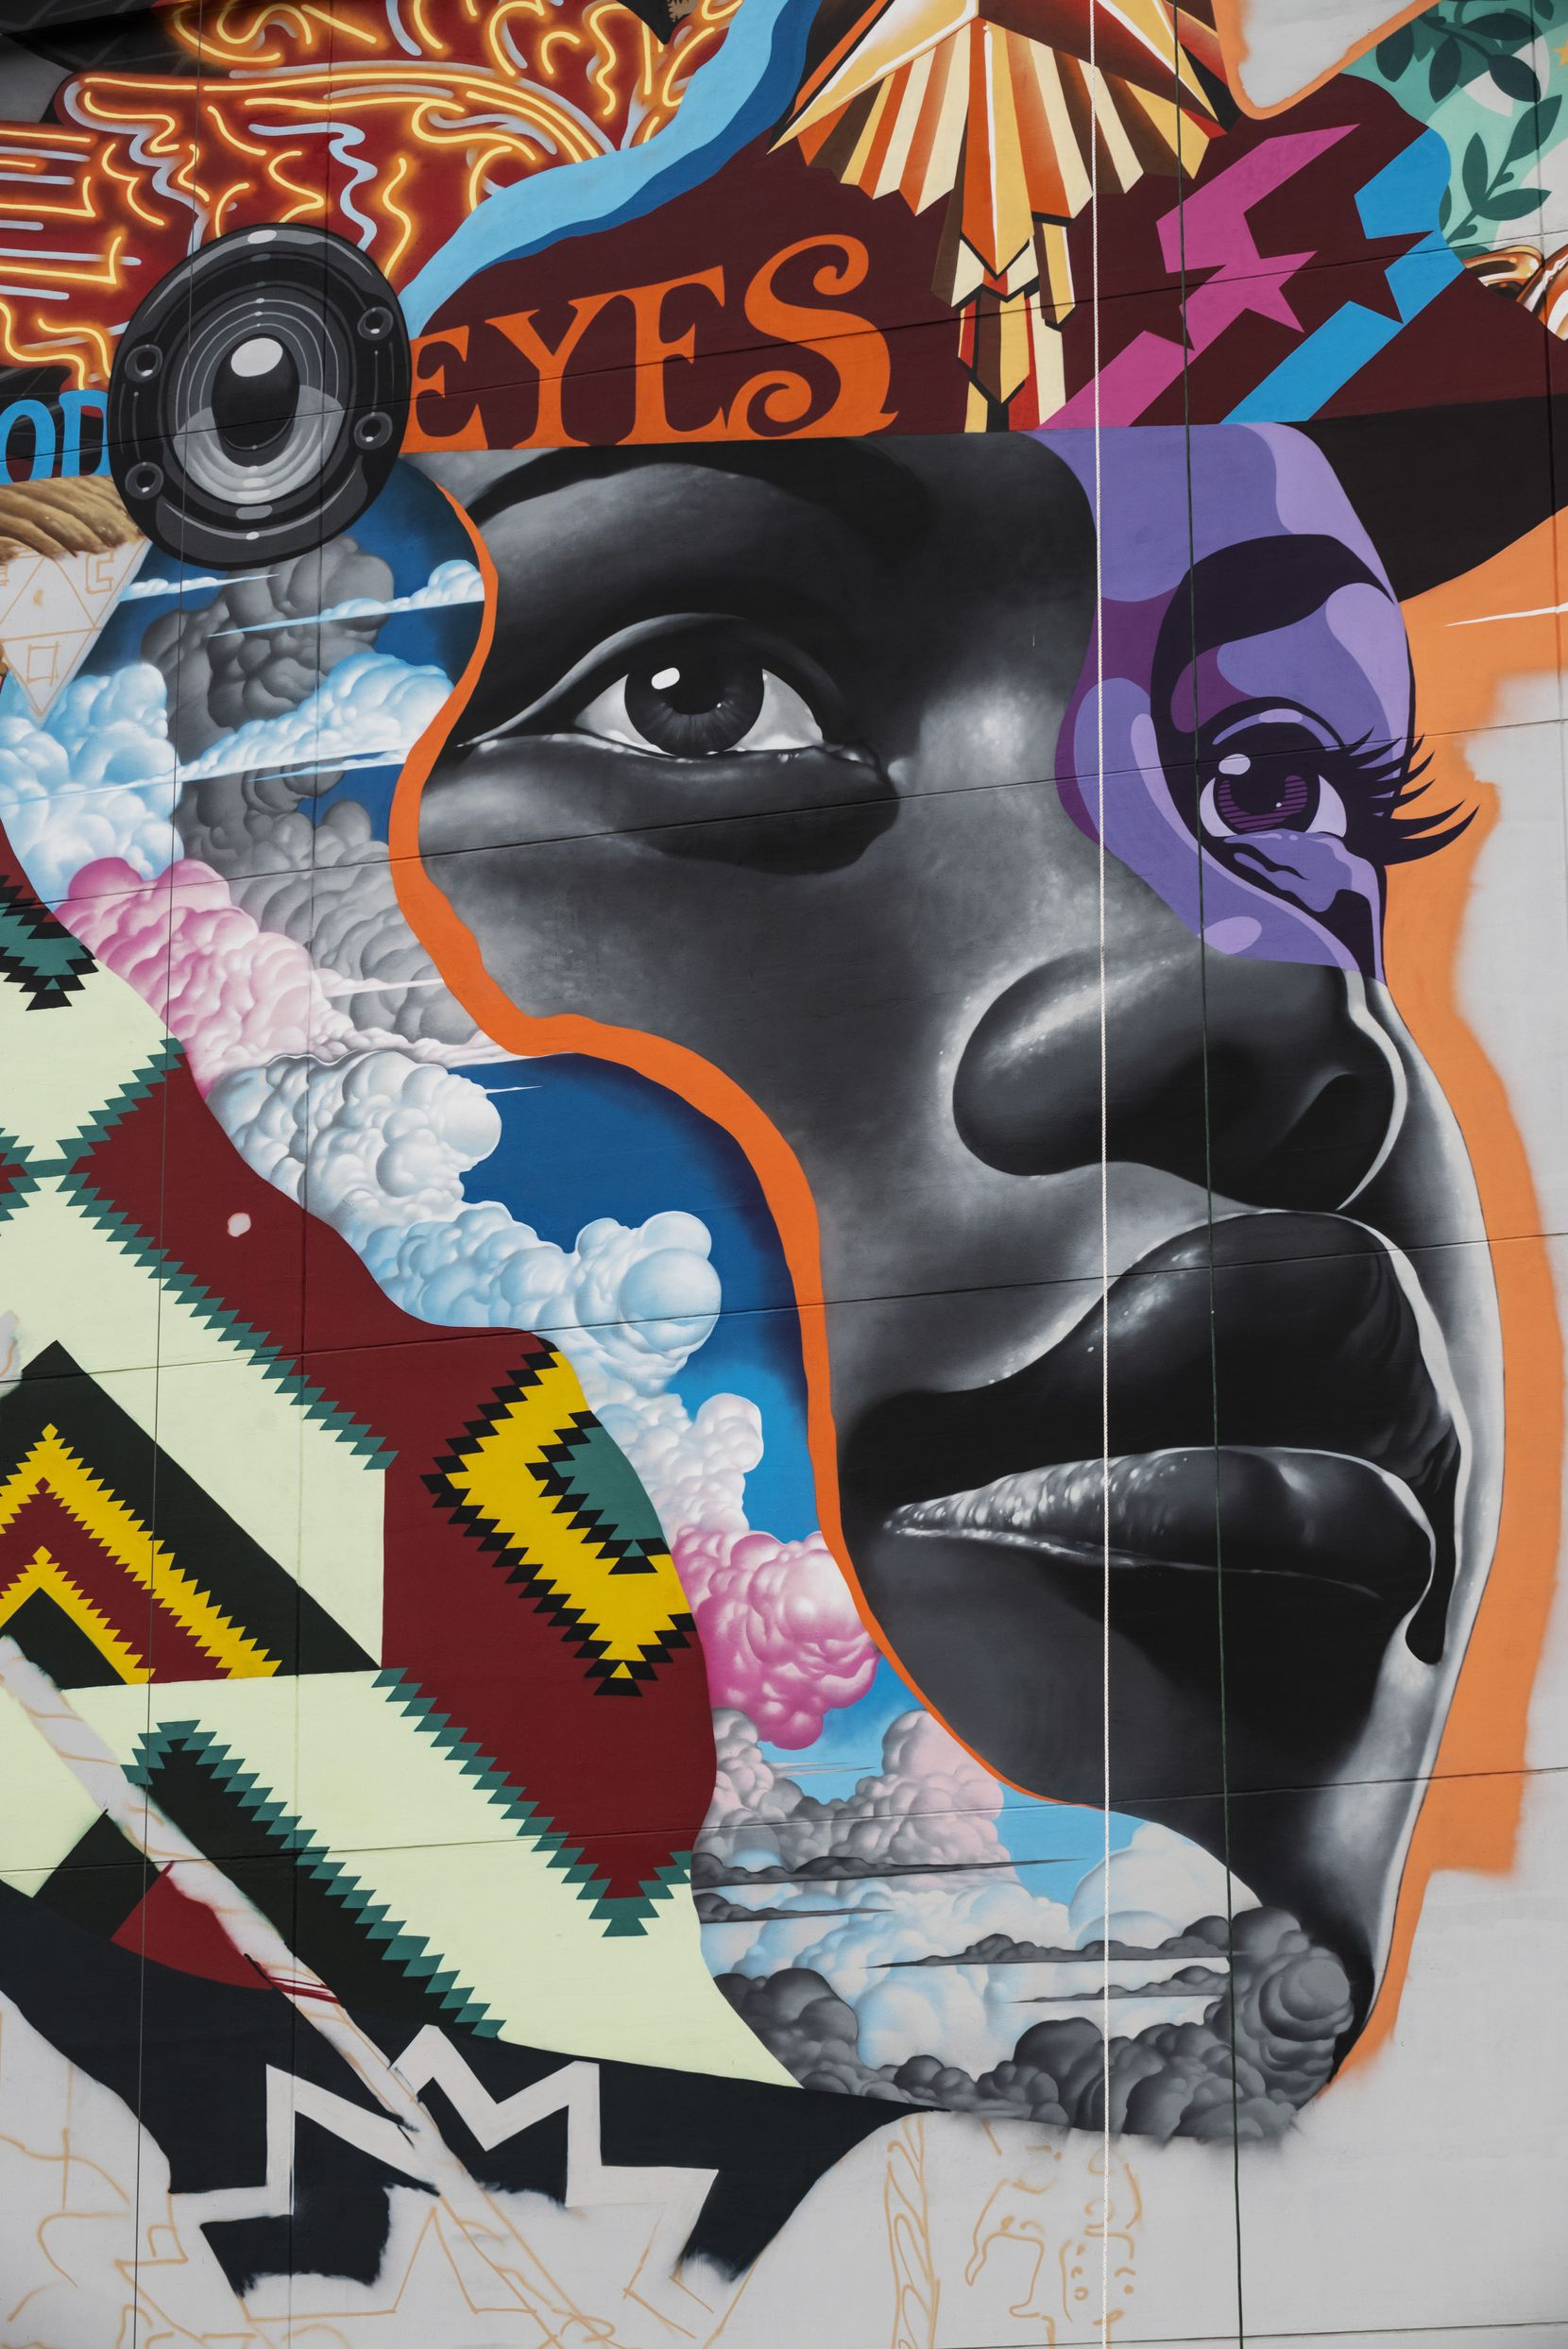 An image of a Black woman is part of a new mural being painted on The Stack building in Deep Ellum by artist Tristan Eaton, on Thursday, March, 11, 2021. The mural is covering 8,500 square feet with iconic images such as legendary local guitarist Stevie Ray Vaughan, Blues musician Lead Belly, Texas' first practicing Black architect William Sidney Pittman and fashion icon Jerry Hall.